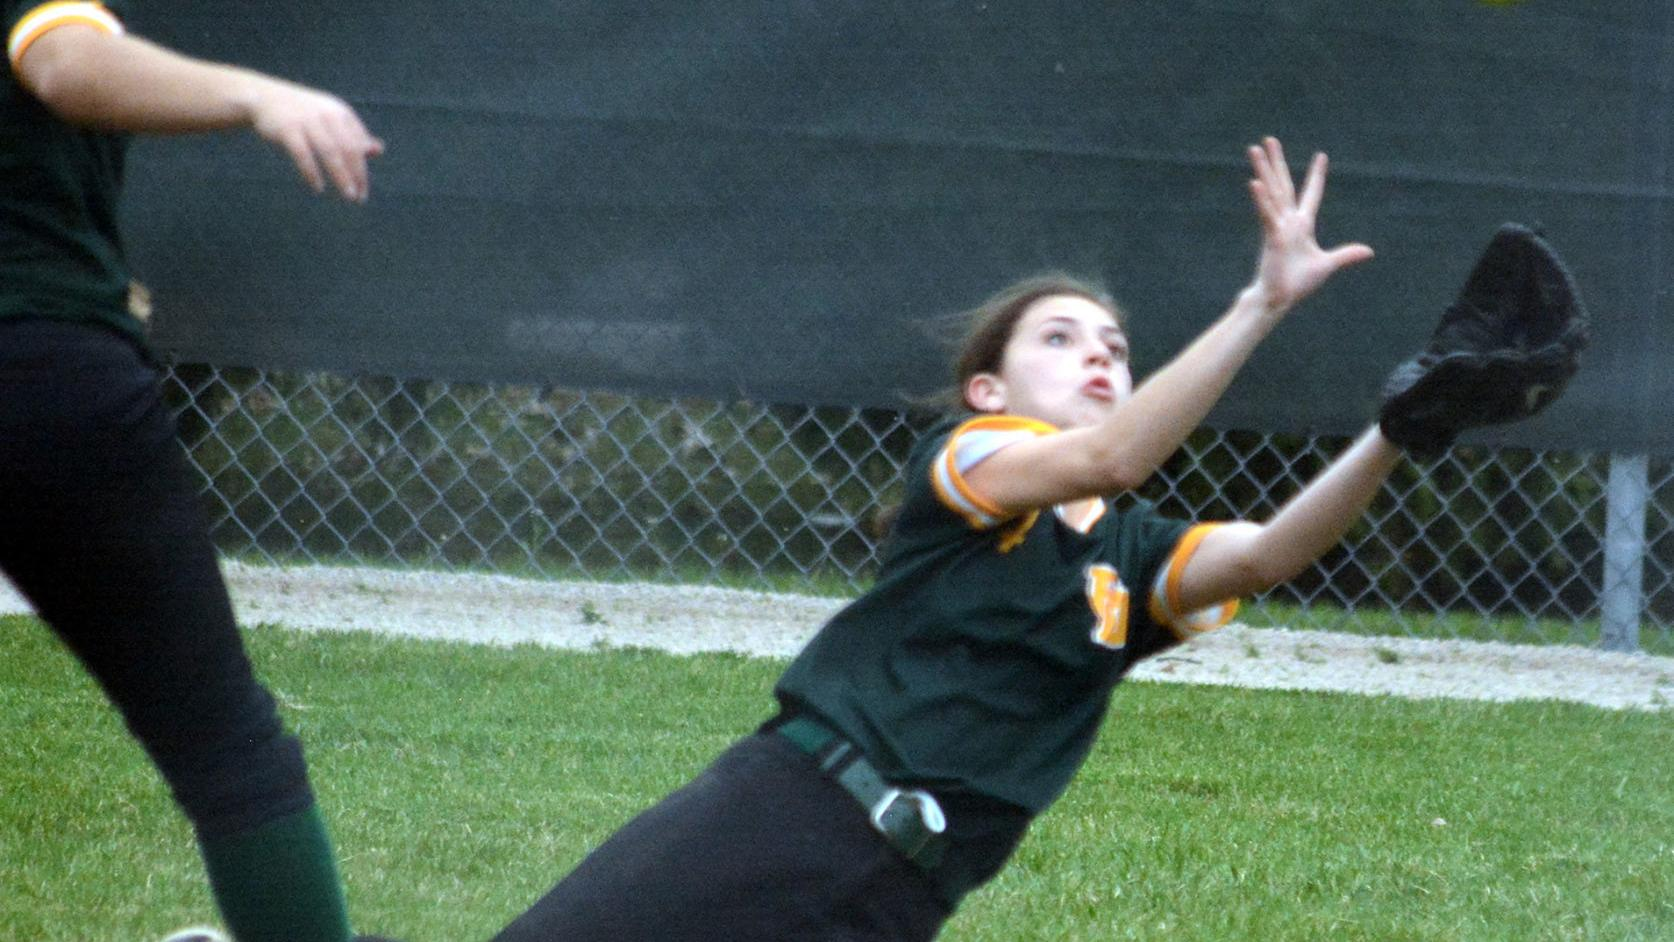 SOFTBALL: Beaver Dam's bats come up empty in 16-0 spanking by Oshkosh West